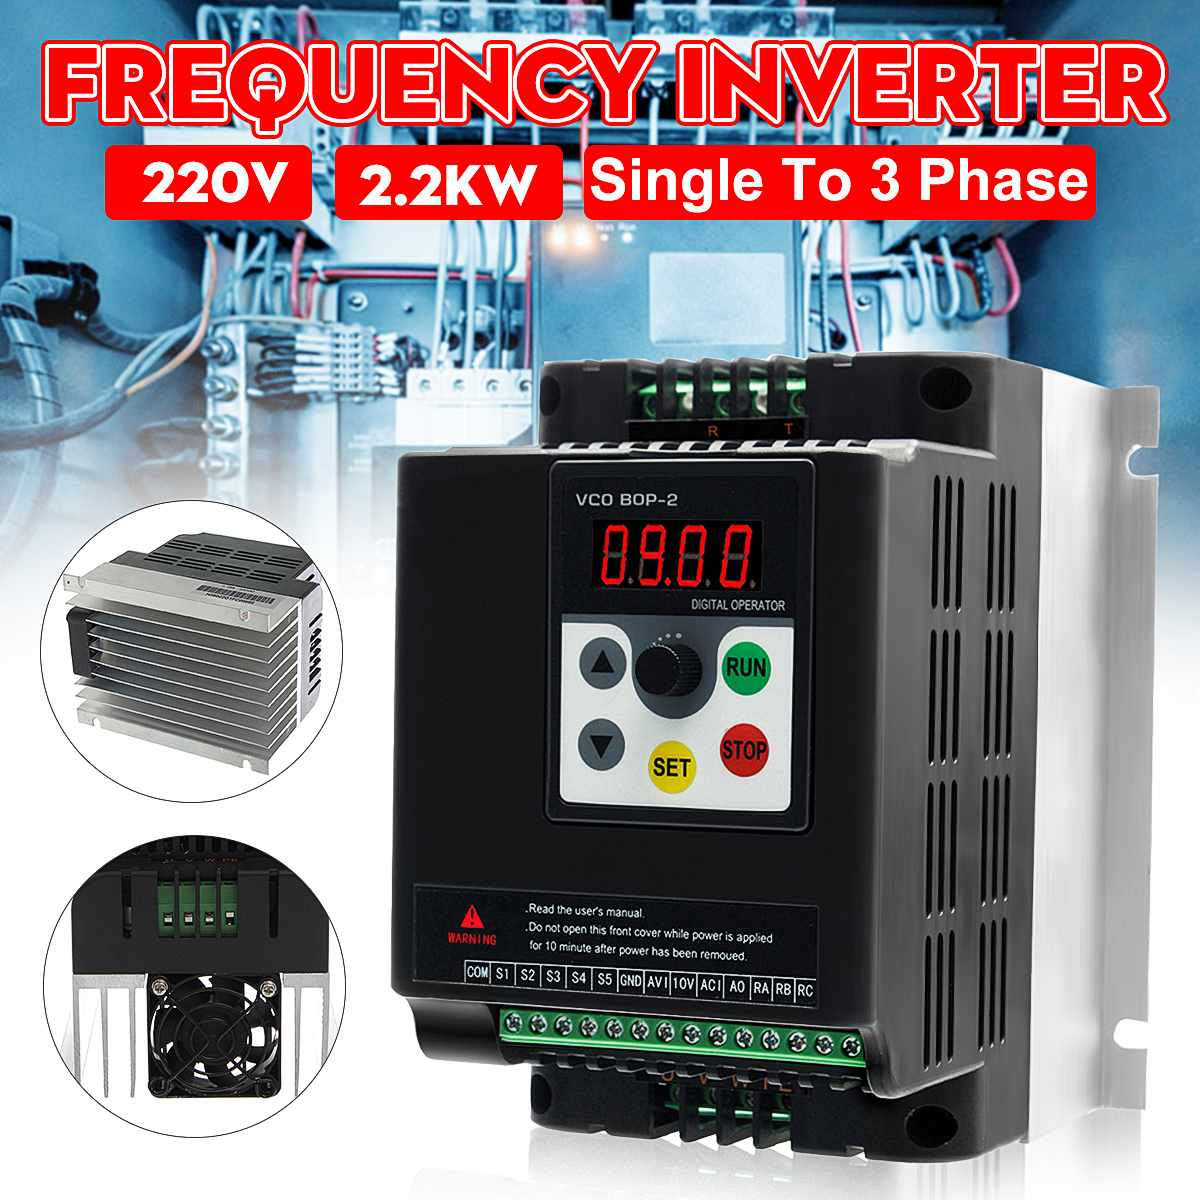 2.2KW 220V Variable Frequency Inverter Converters Single Phase Input Three Phase Output2.2KW 220V Variable Frequency Inverter Converters Single Phase Input Three Phase Output